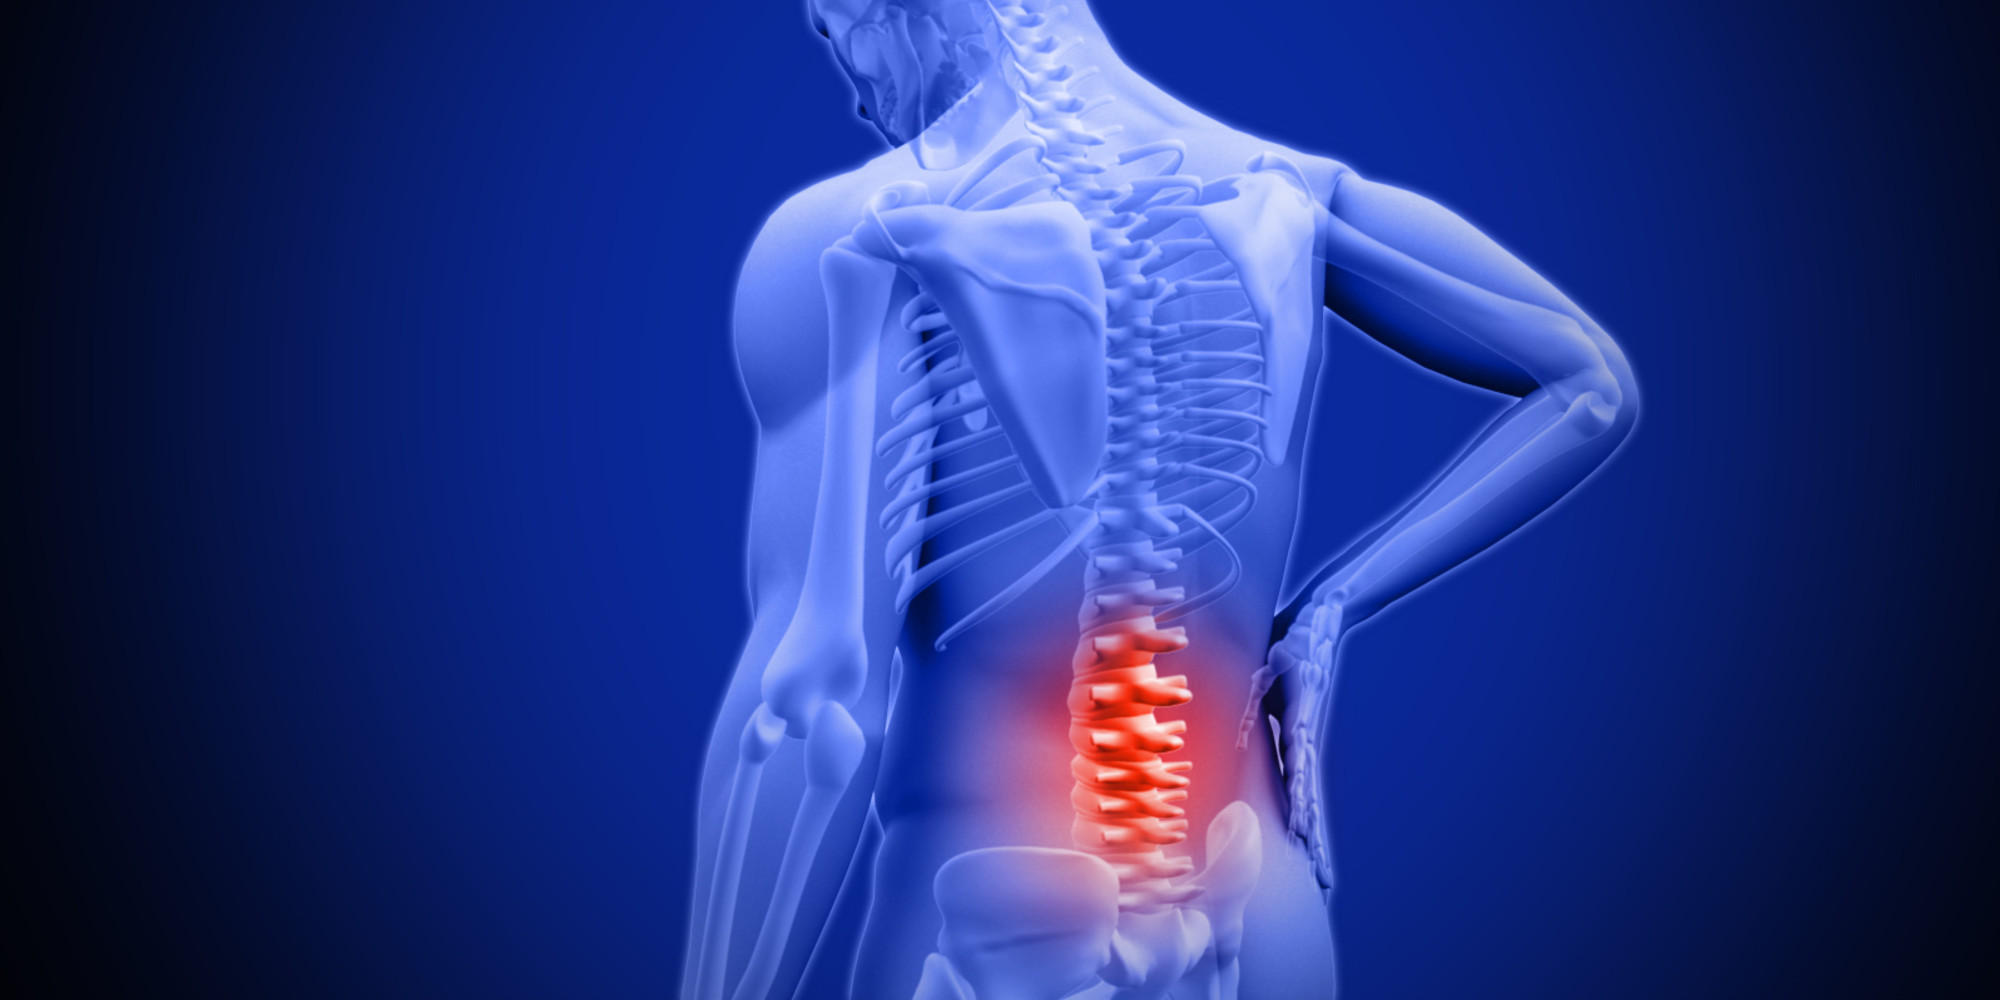 How important is to keep your back healthy?